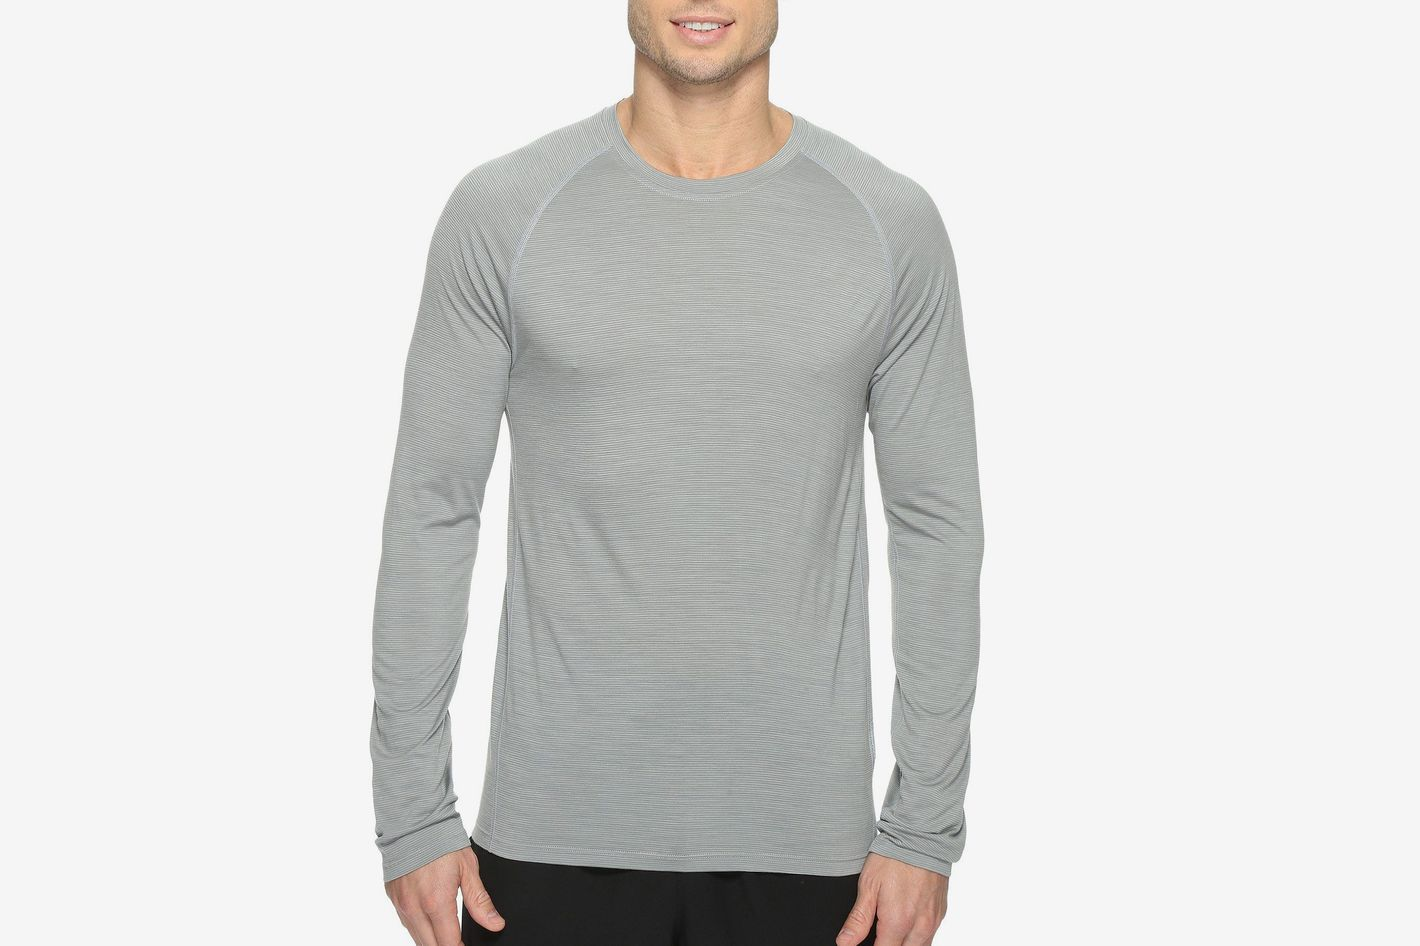 Smartwool Men's Merino 150 Baselayer Pattern Long Sleeve